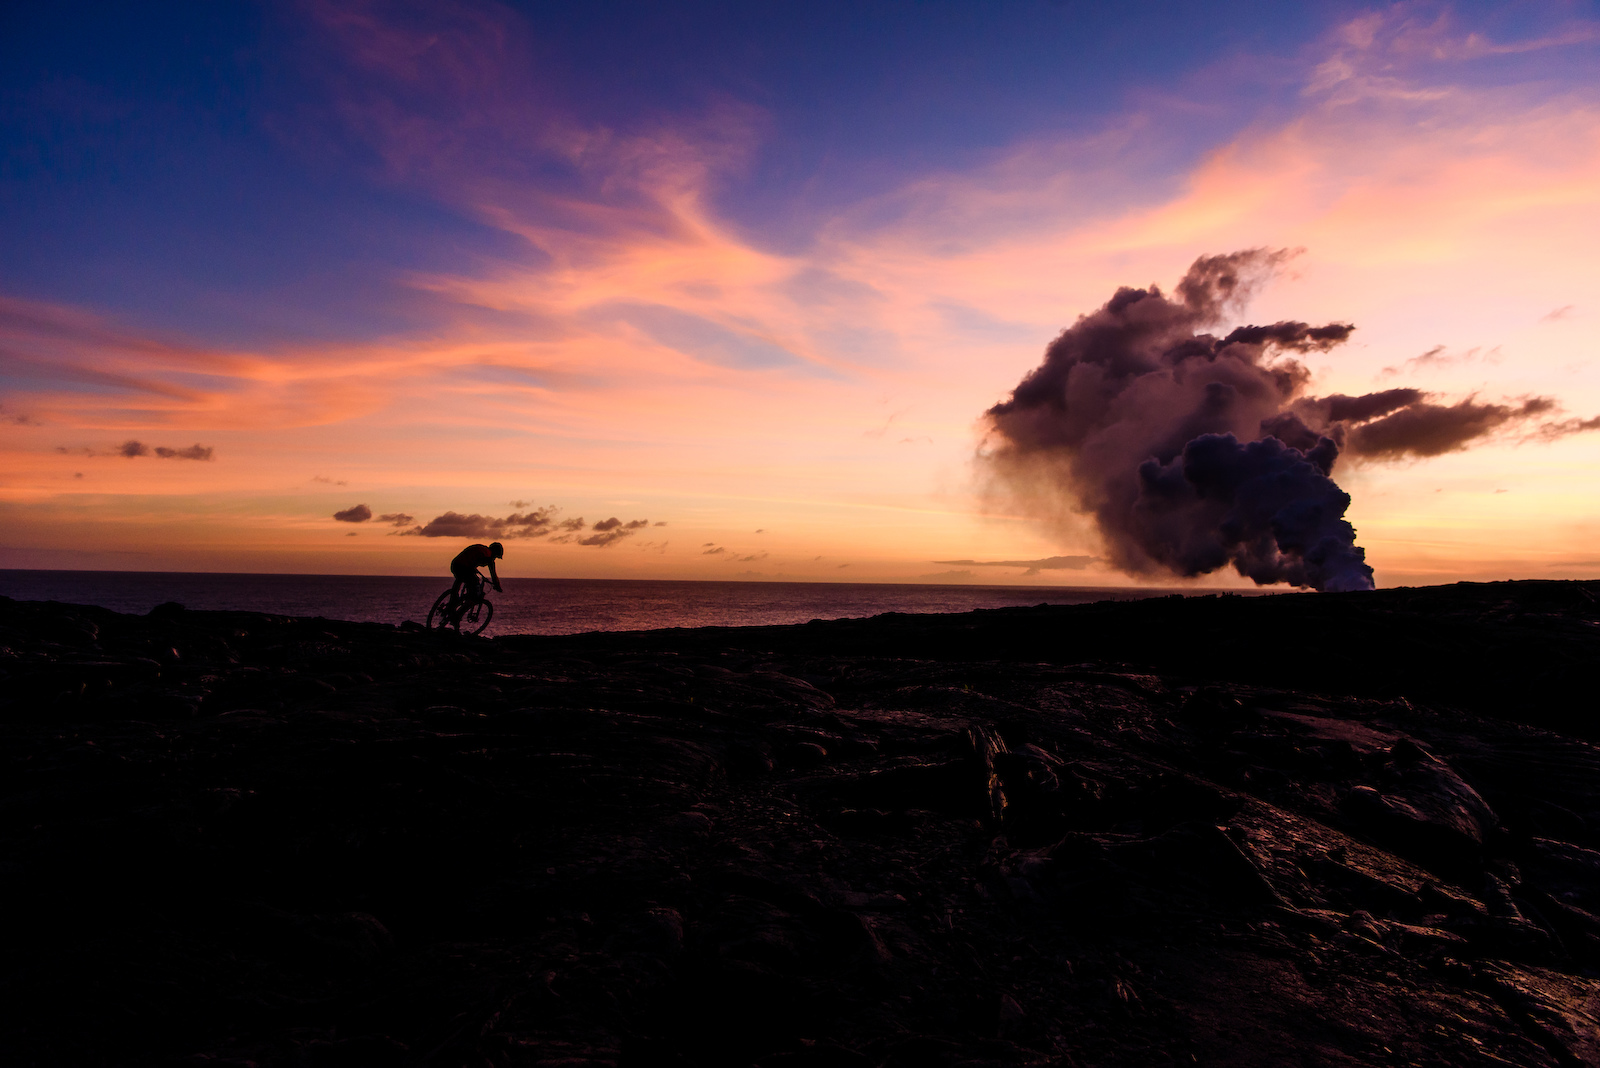 Sunsets and volcanoes in Oahu Image by Bruno Long